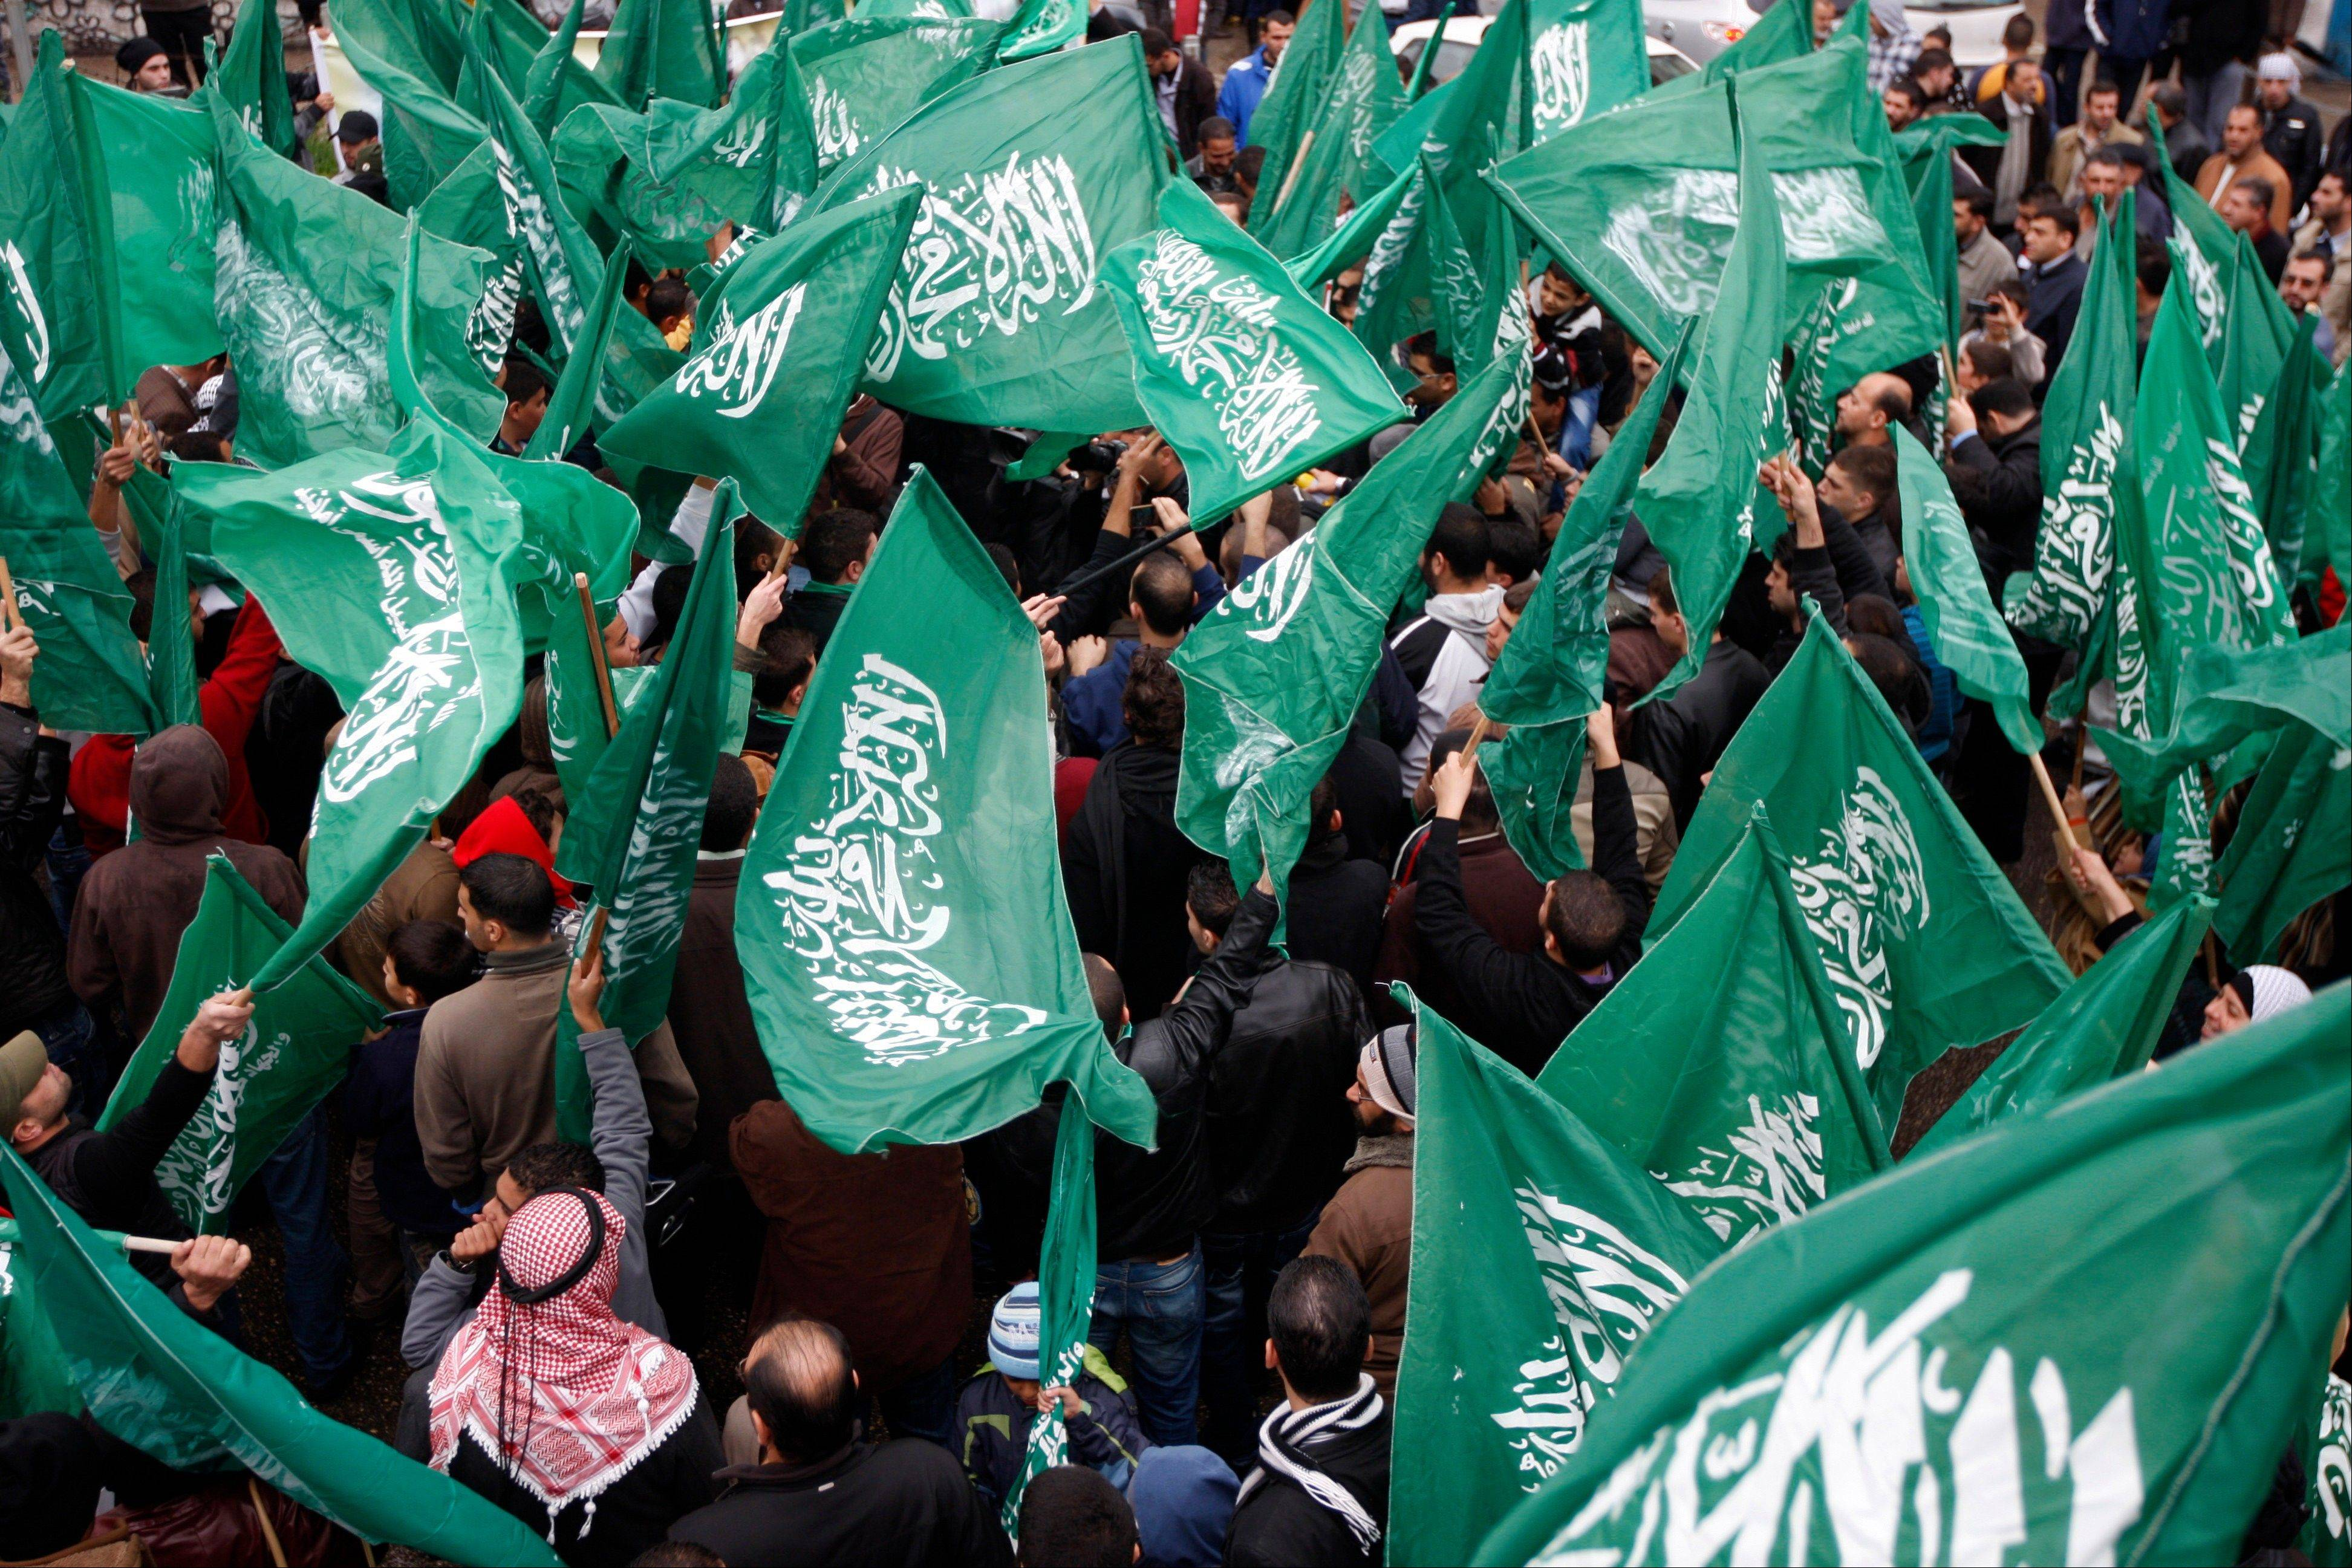 Hamas supporters wave the movement's flags during a pro-Hamas rally in the West Bank city of Ramallah, Friday, Nov 23, 2012.